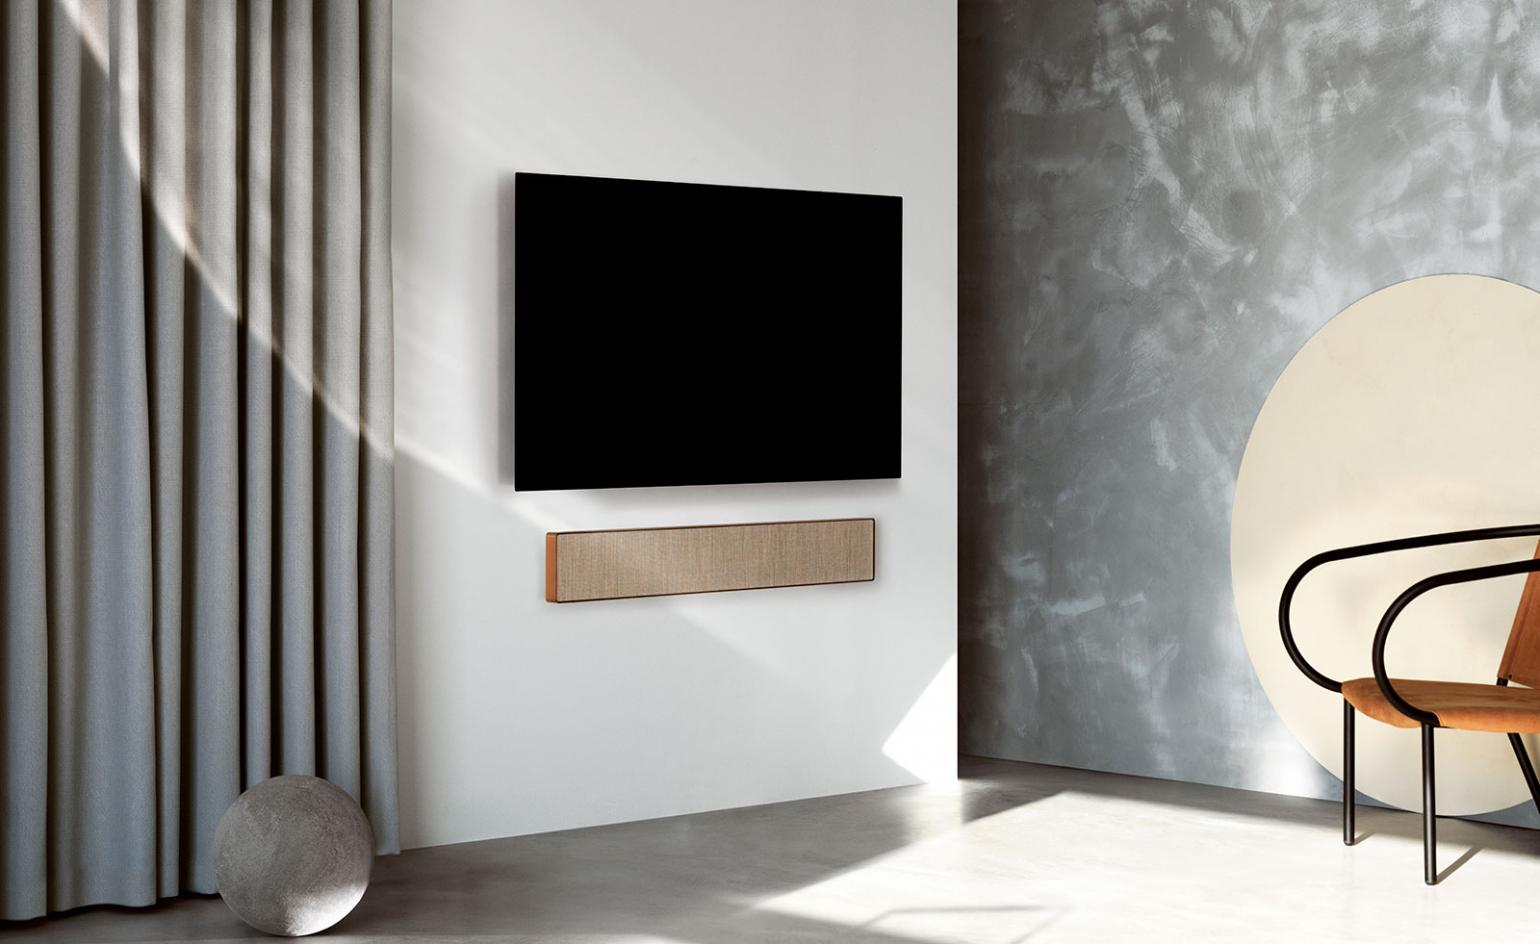 Bang & Olufsen's first foray into soundbars is an artful home audio addition